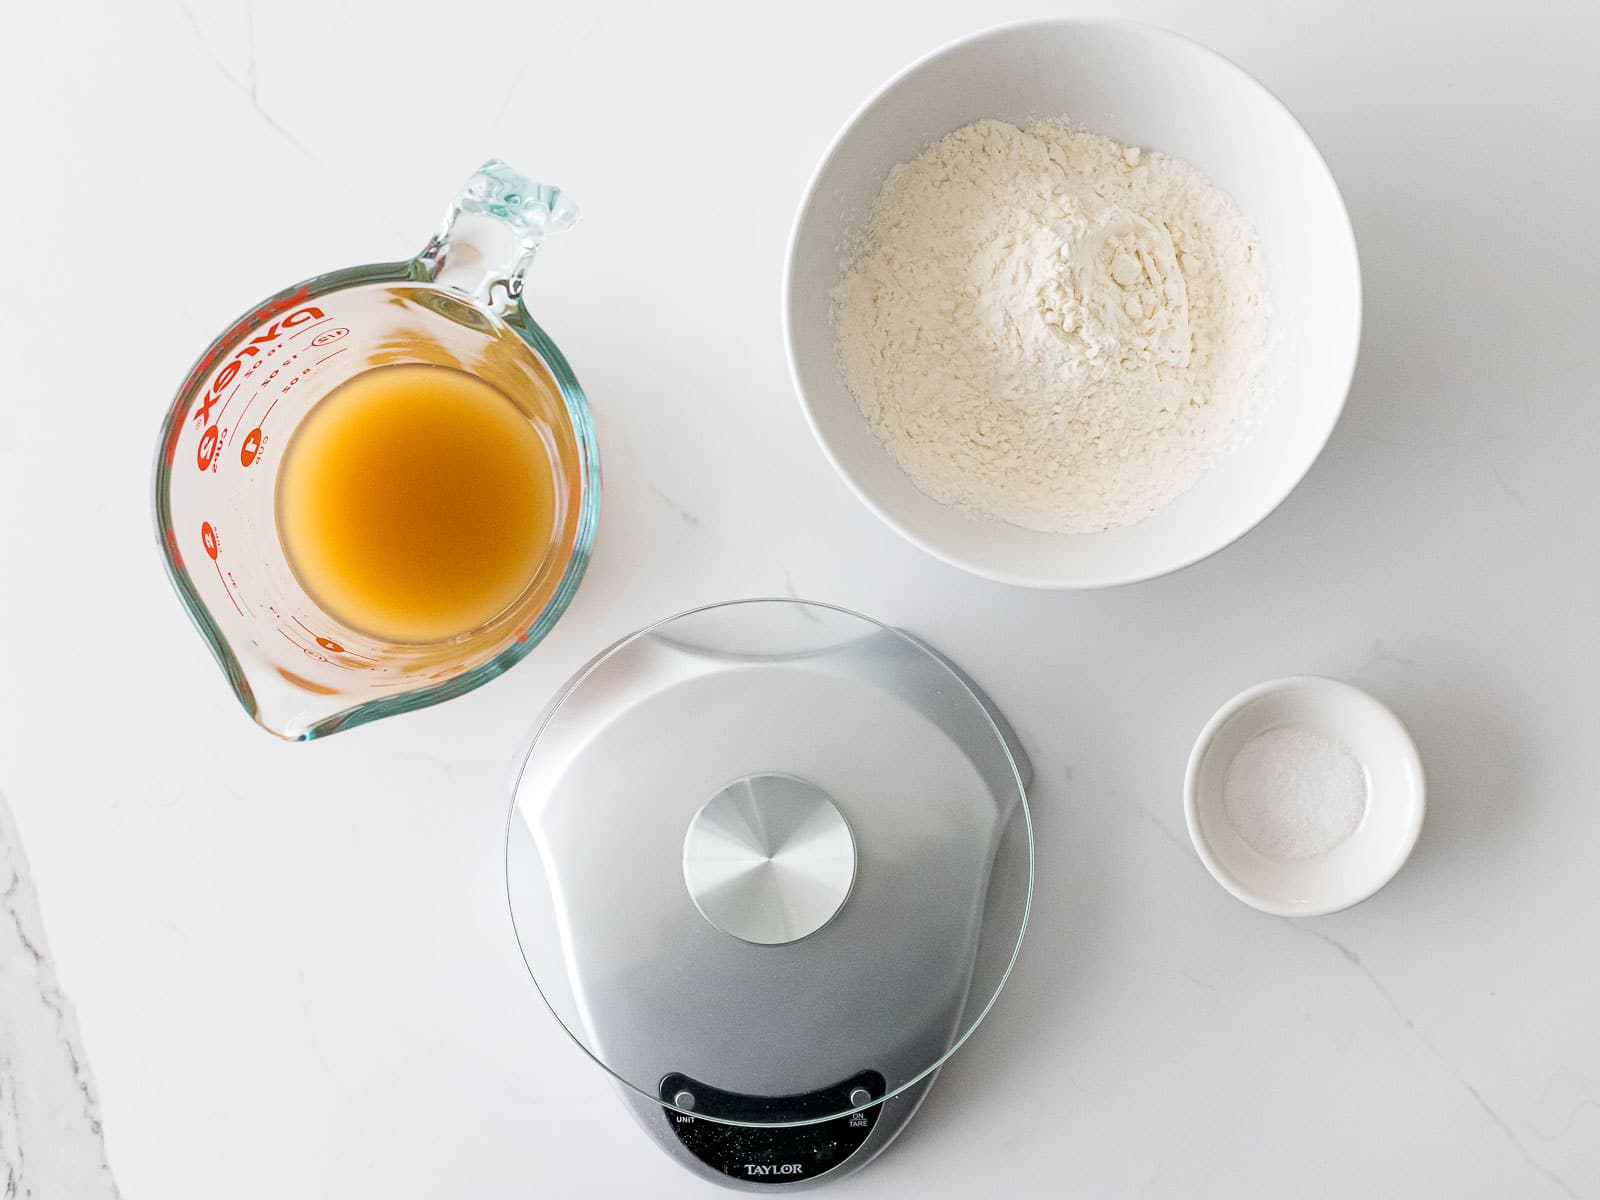 ingredients for yeast water starter including flour, kitchen scale, and salt